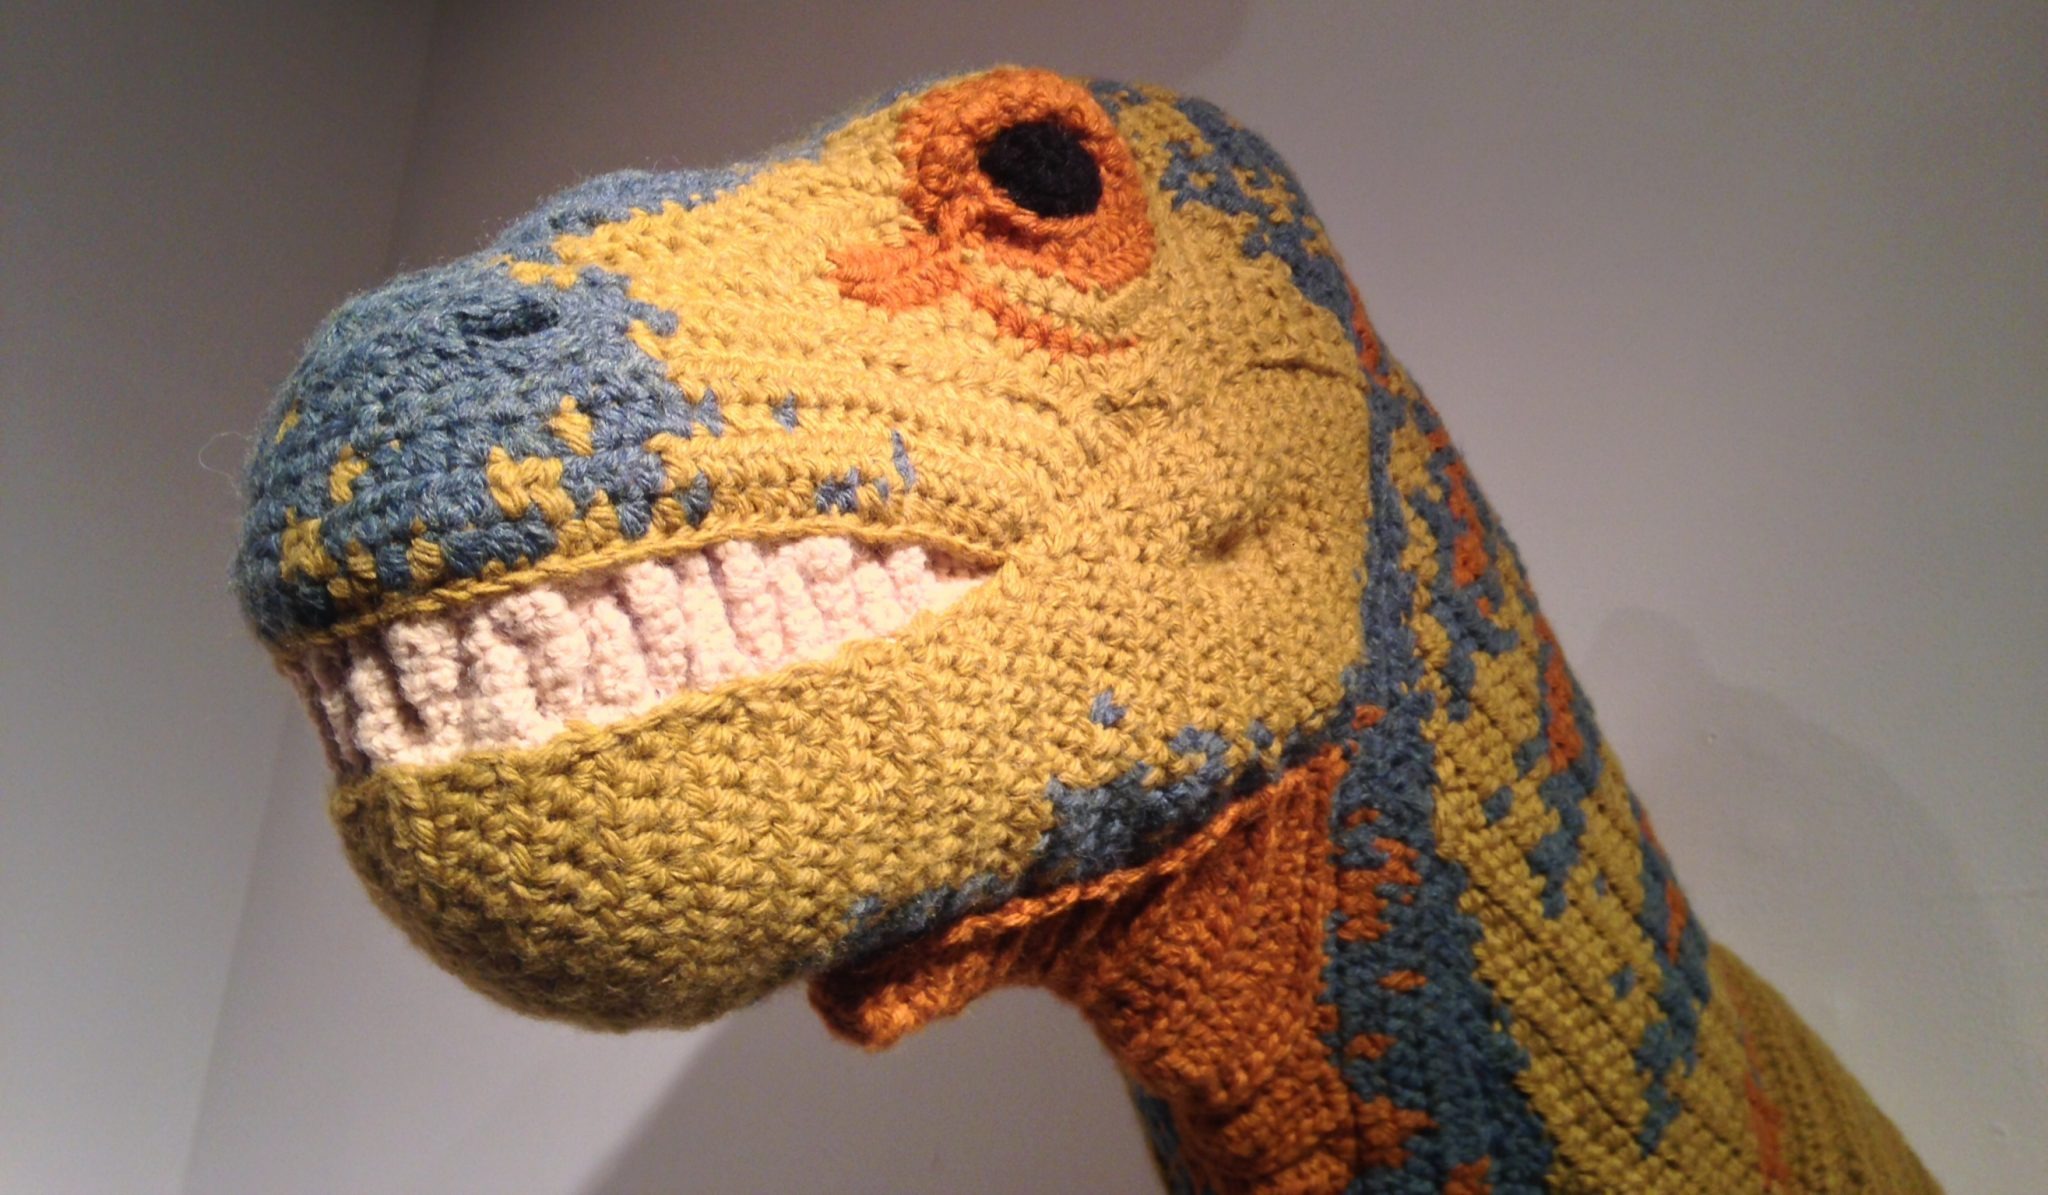 Crochet Art : Look at the Crochet Art by Nathan Vincent